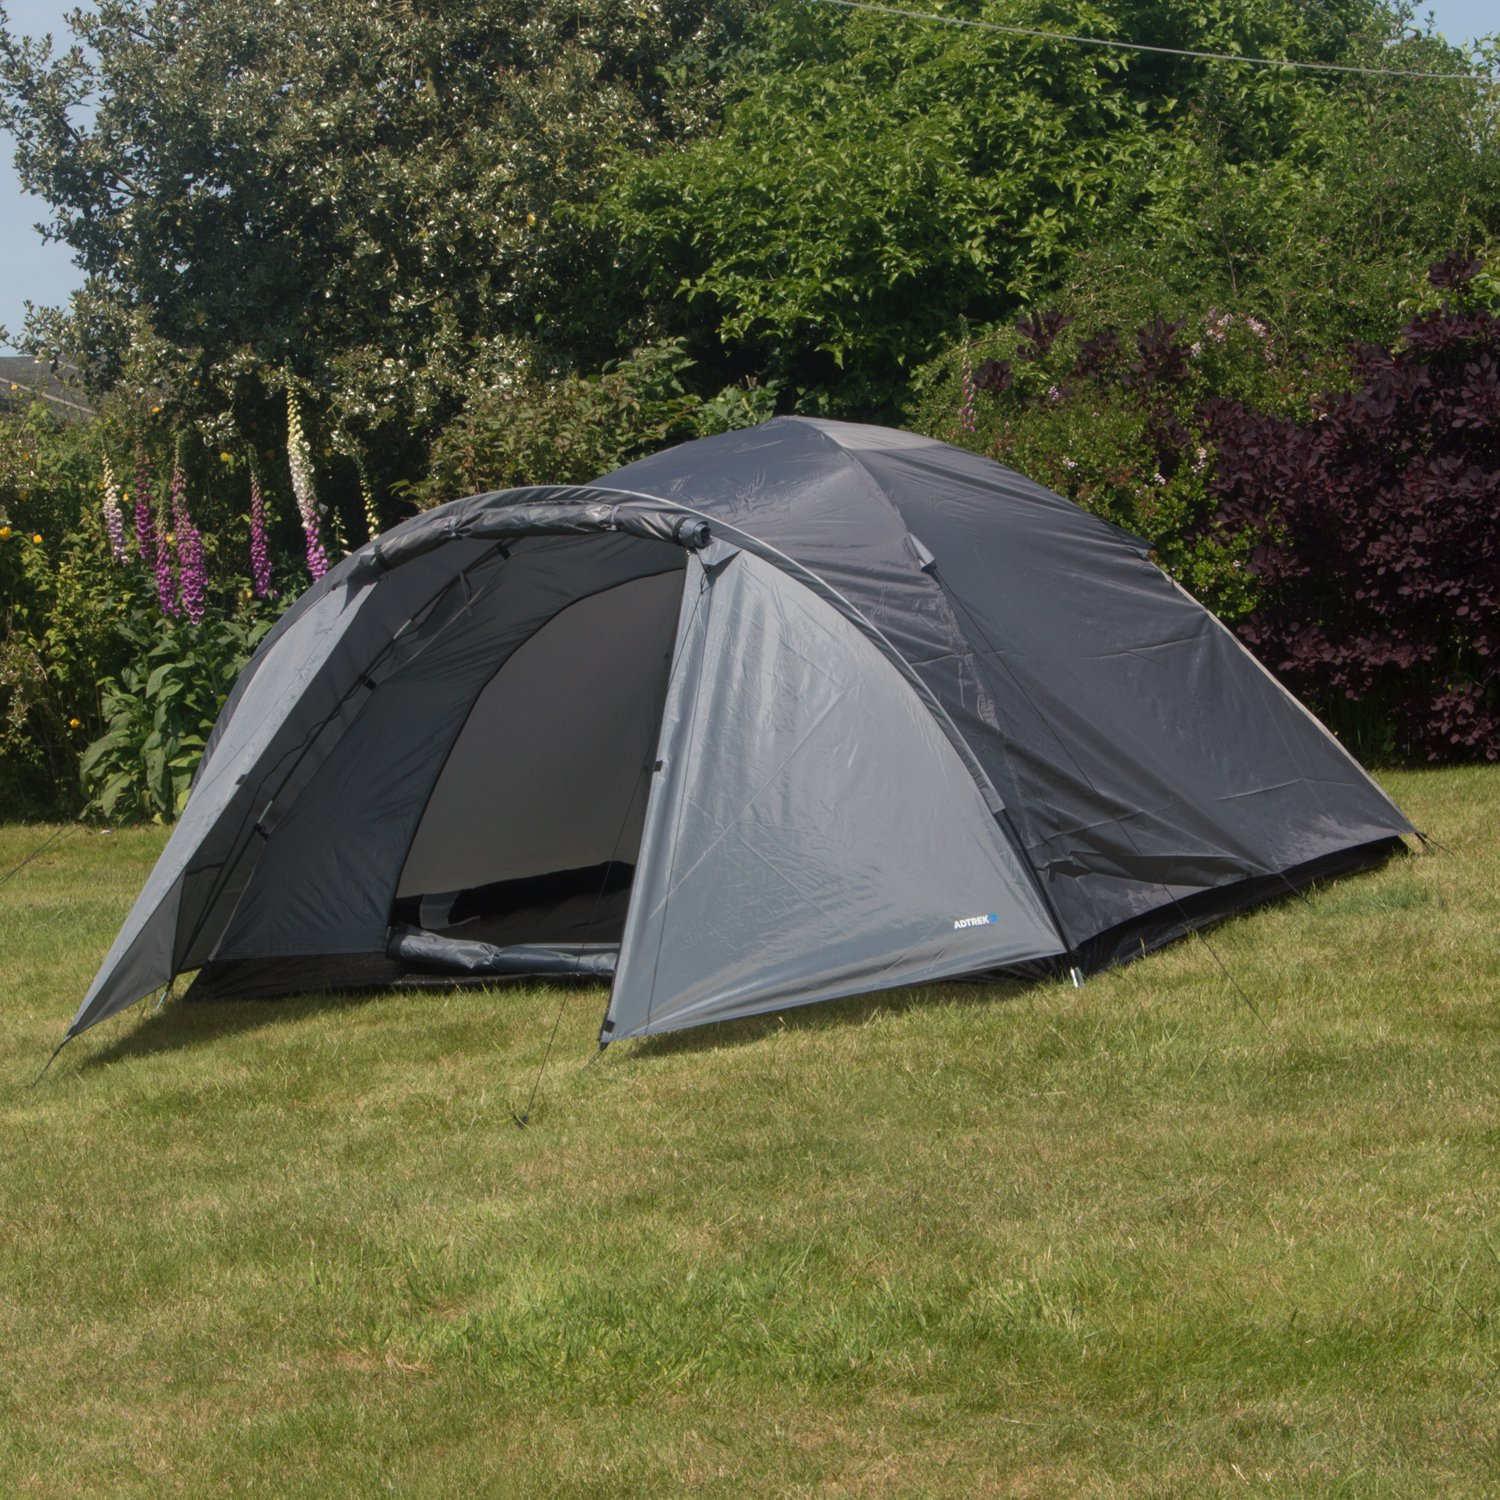 Adtrek Double Skin Dome 4 Man Berth C&ing Festival Family Tent & 4 Man Pop Up Tents: Amazon.co.uk